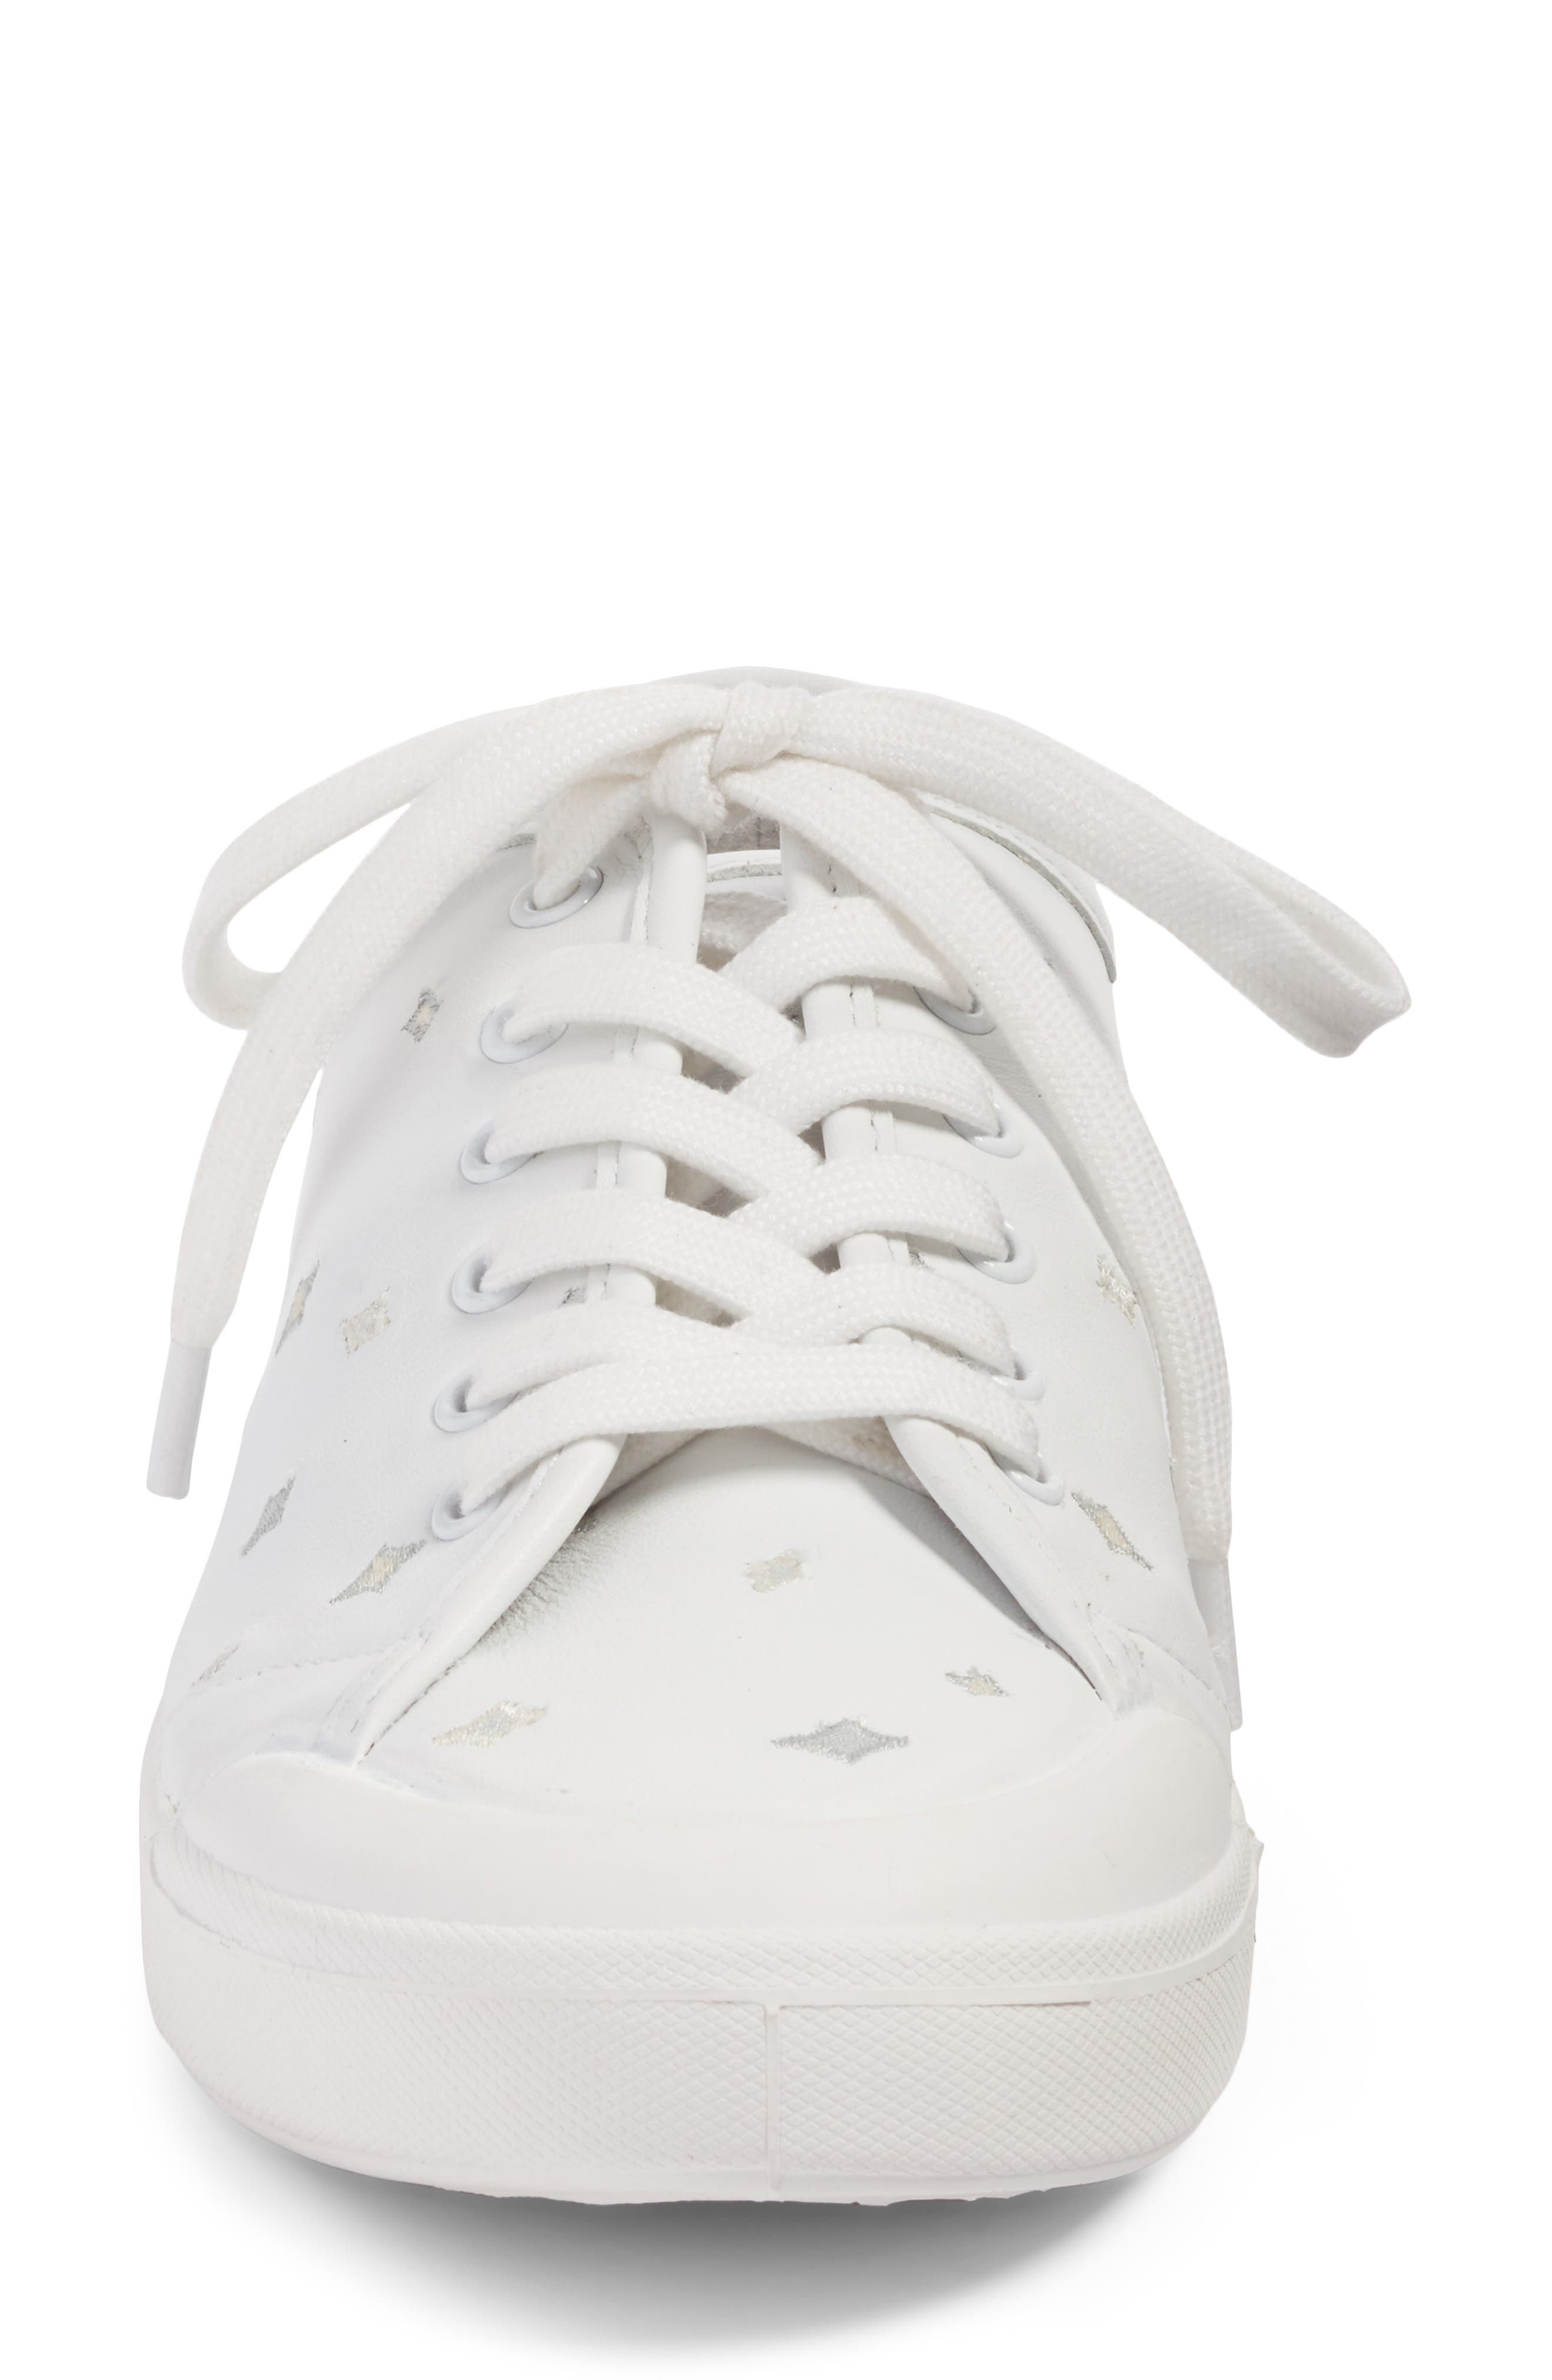 Embroidered Standard Issue Sneaker,                             Alternate thumbnail 4, color,                             129